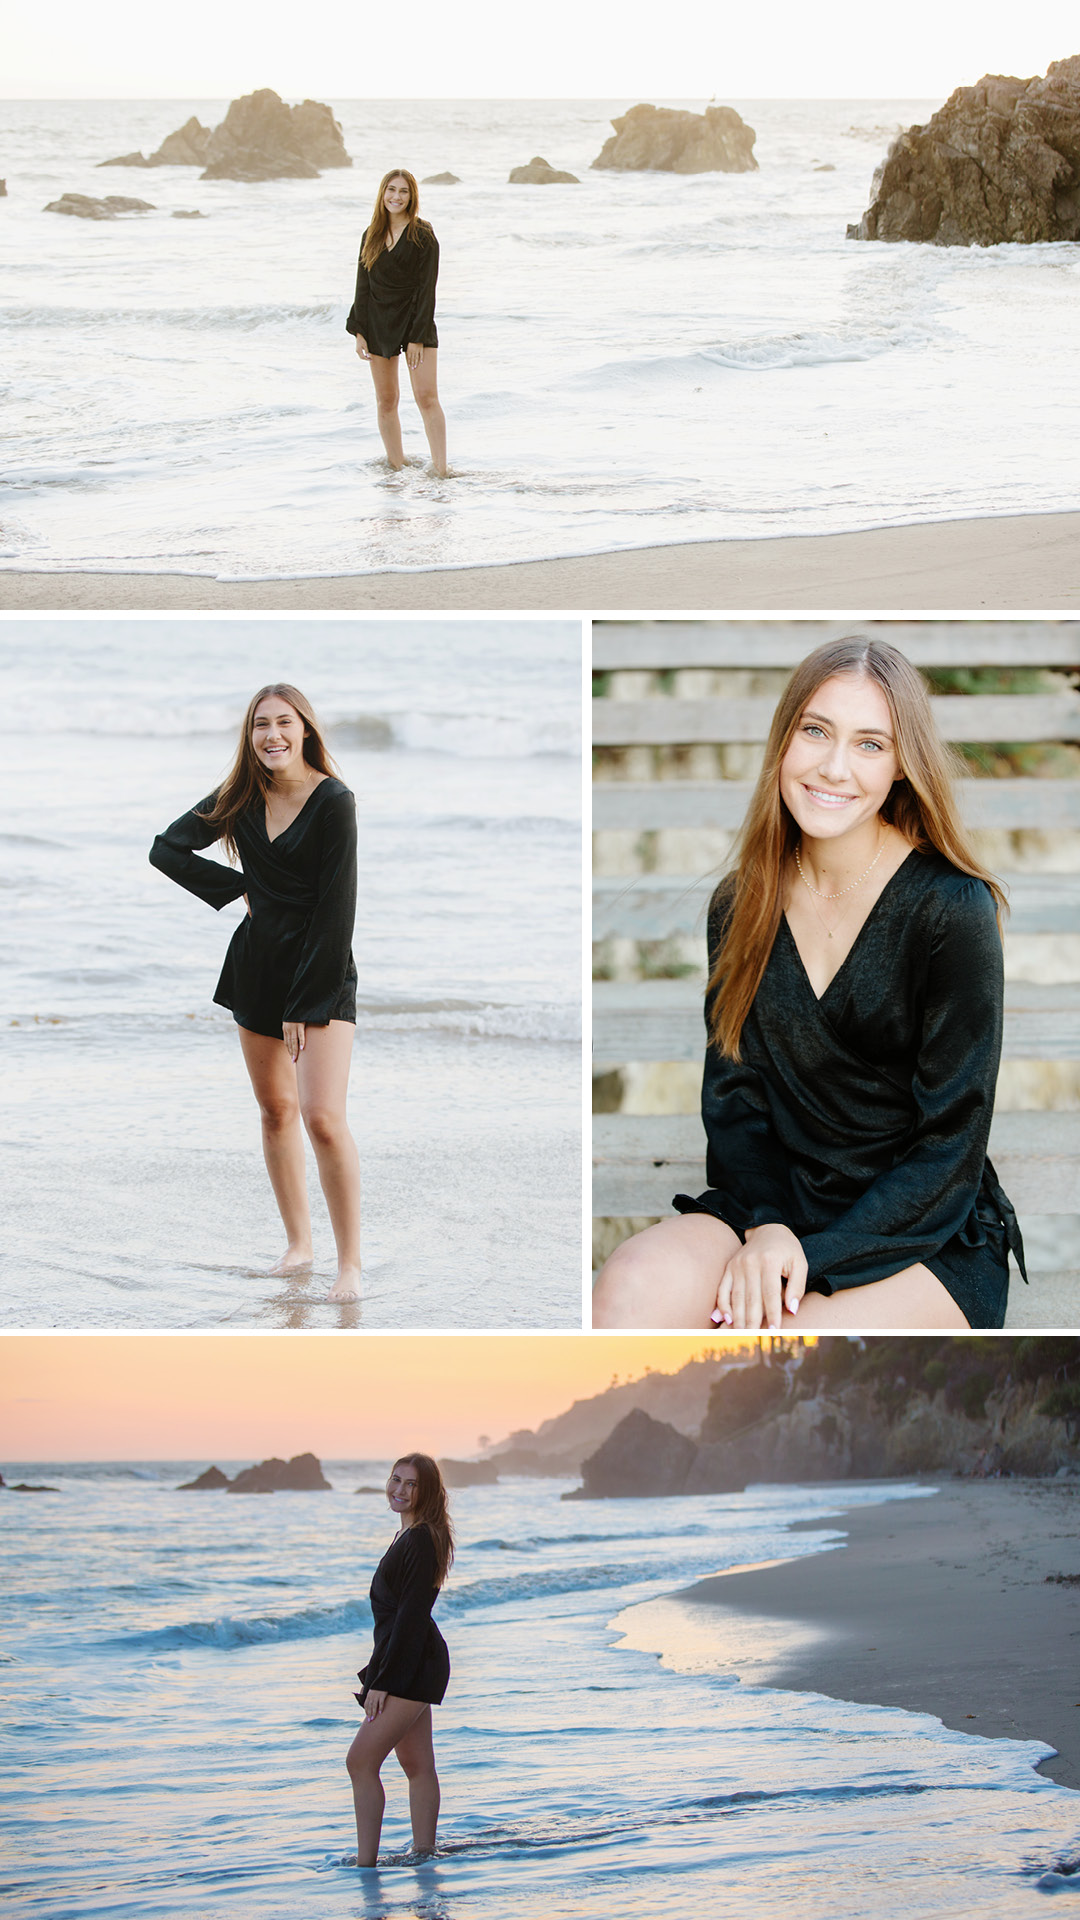 Malibu beach senior photos